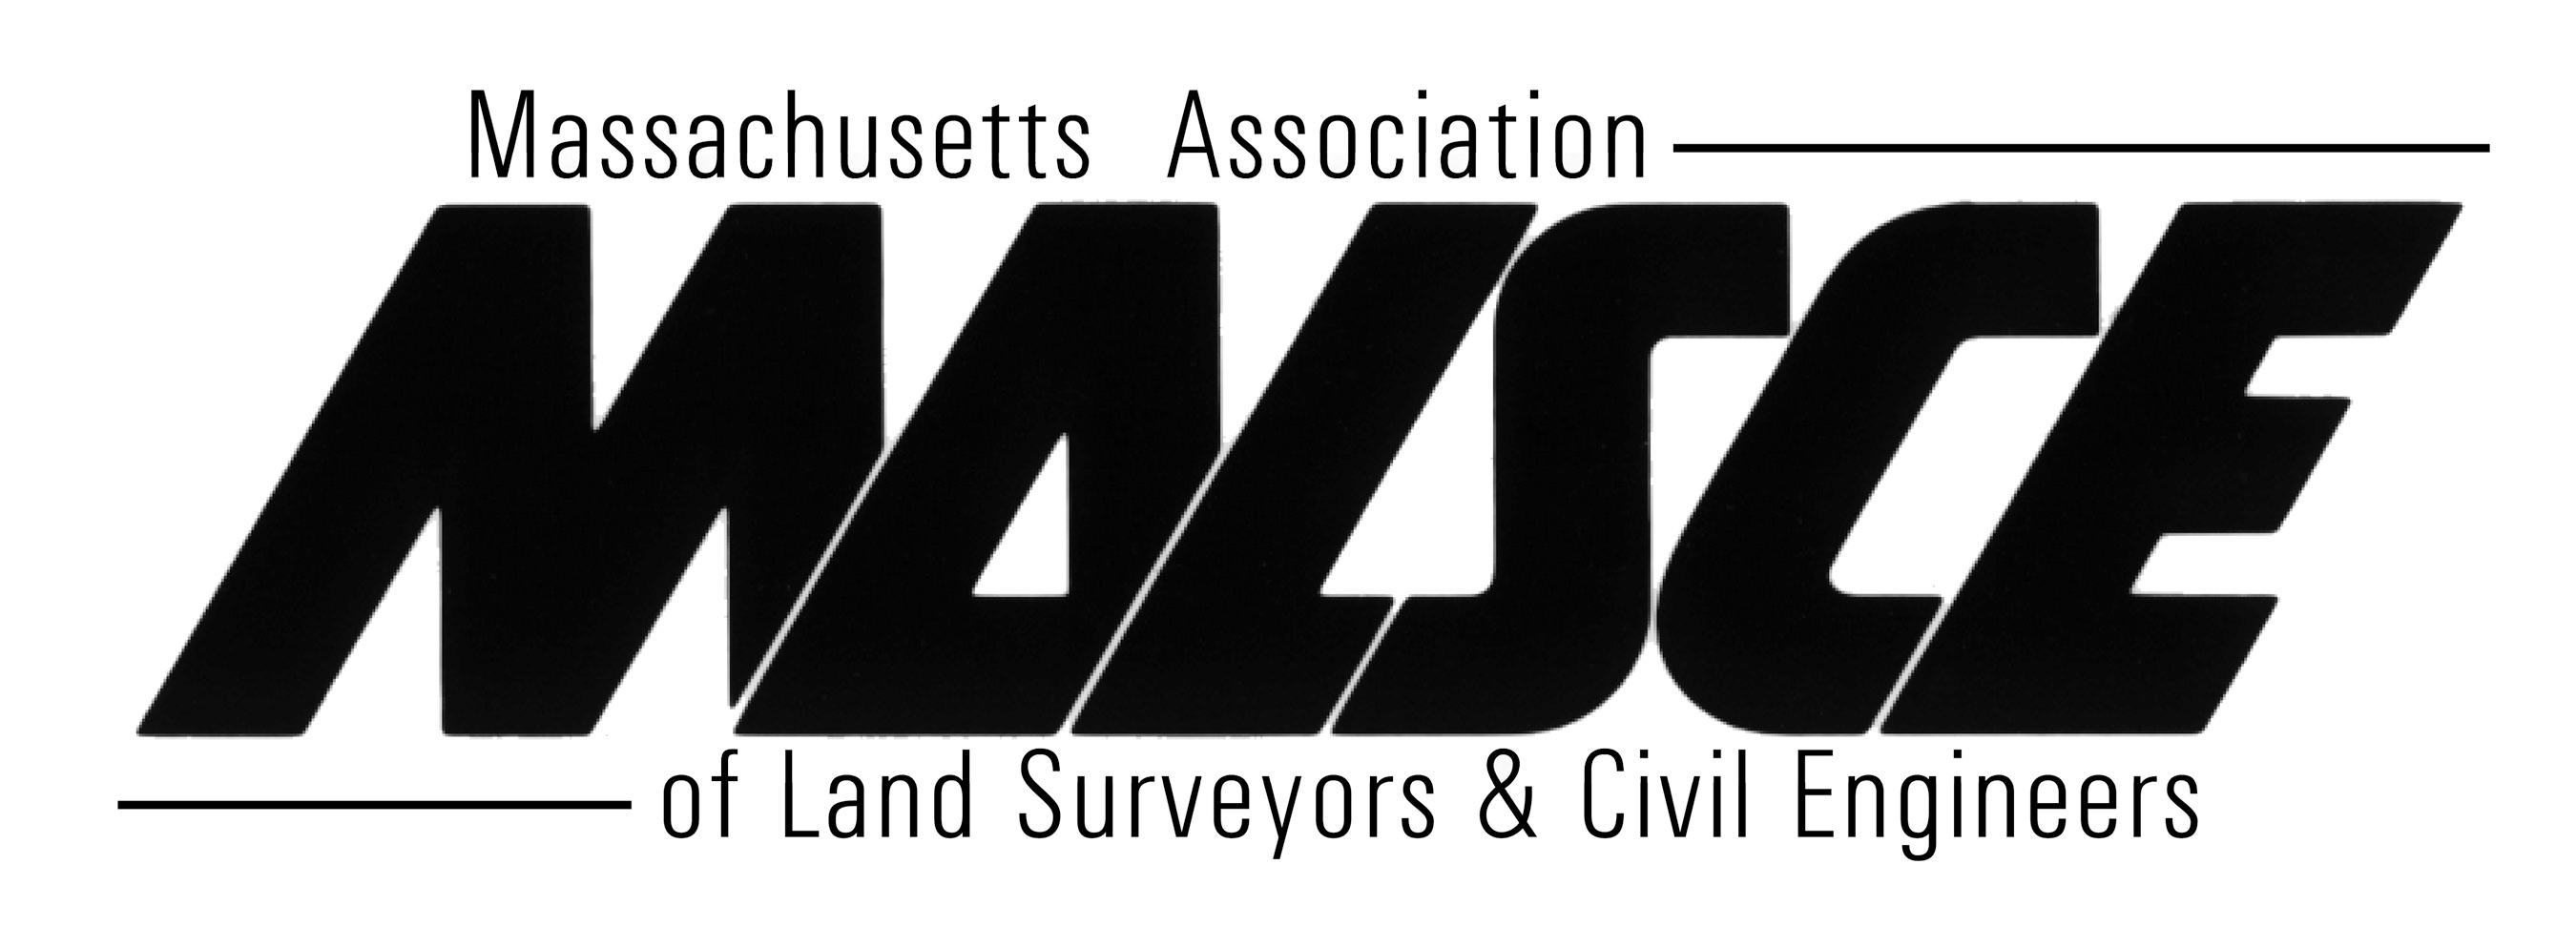 Massachusetts Association of Land Surveyors & Civil Engineers